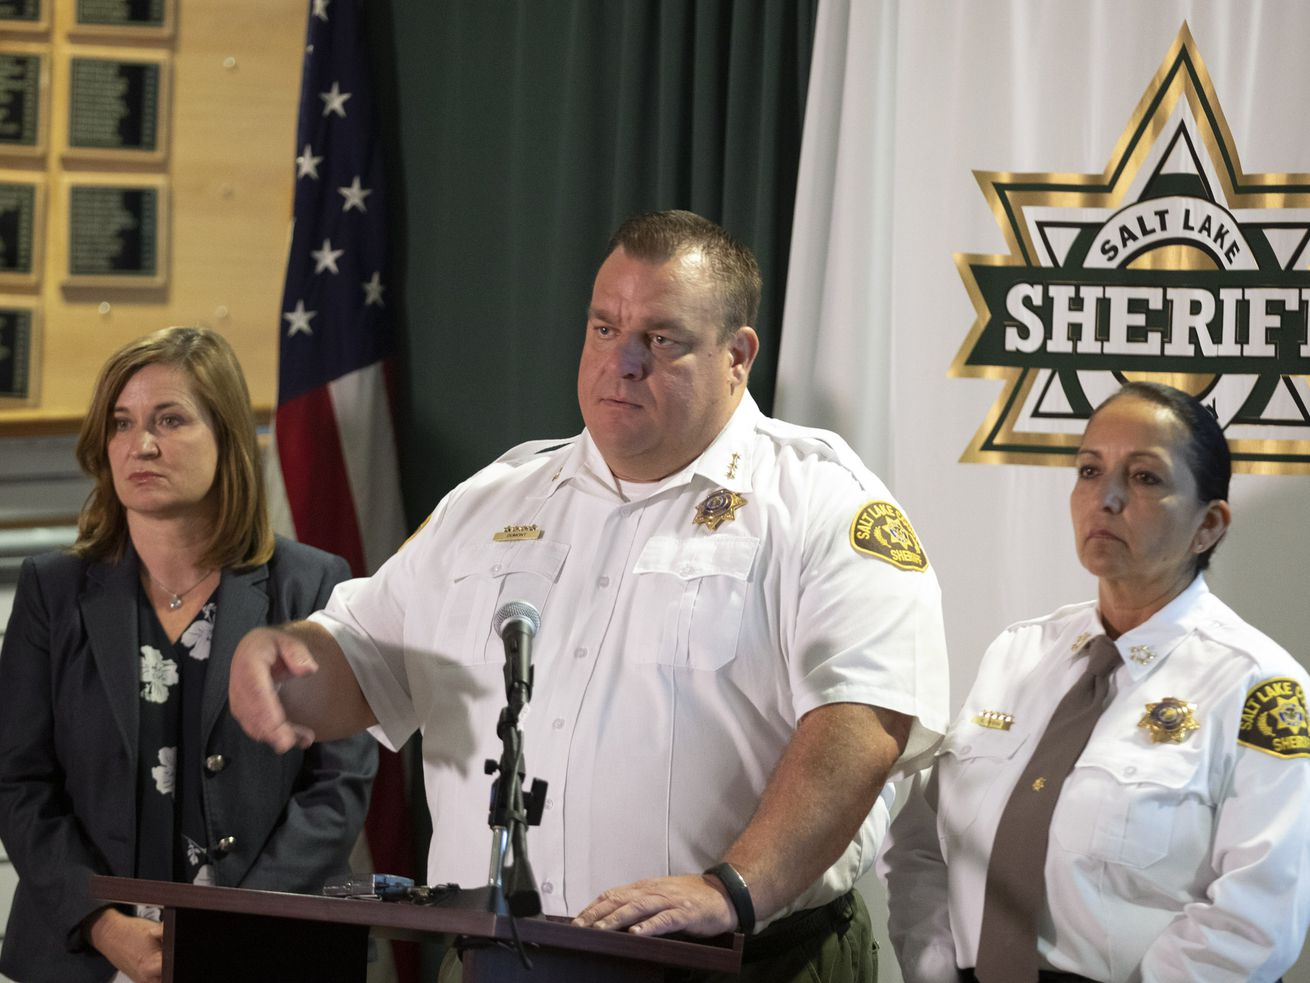 Salt Lake County Mayor Jenny Wilson, left, Salt Lake County Sheriff's Chief Deputy Matt Dumont and Salt Lake County Sheriff Rosie Rivera unveil a new public information tool for the Salt Lake County Jail during a press conference at the Salt Lake County Sheriff's Office in South Salt Lake on Wednesday, Aug. 14, 2019. The Jail Dashboard pulls data from the jail's data system and is updated every day.